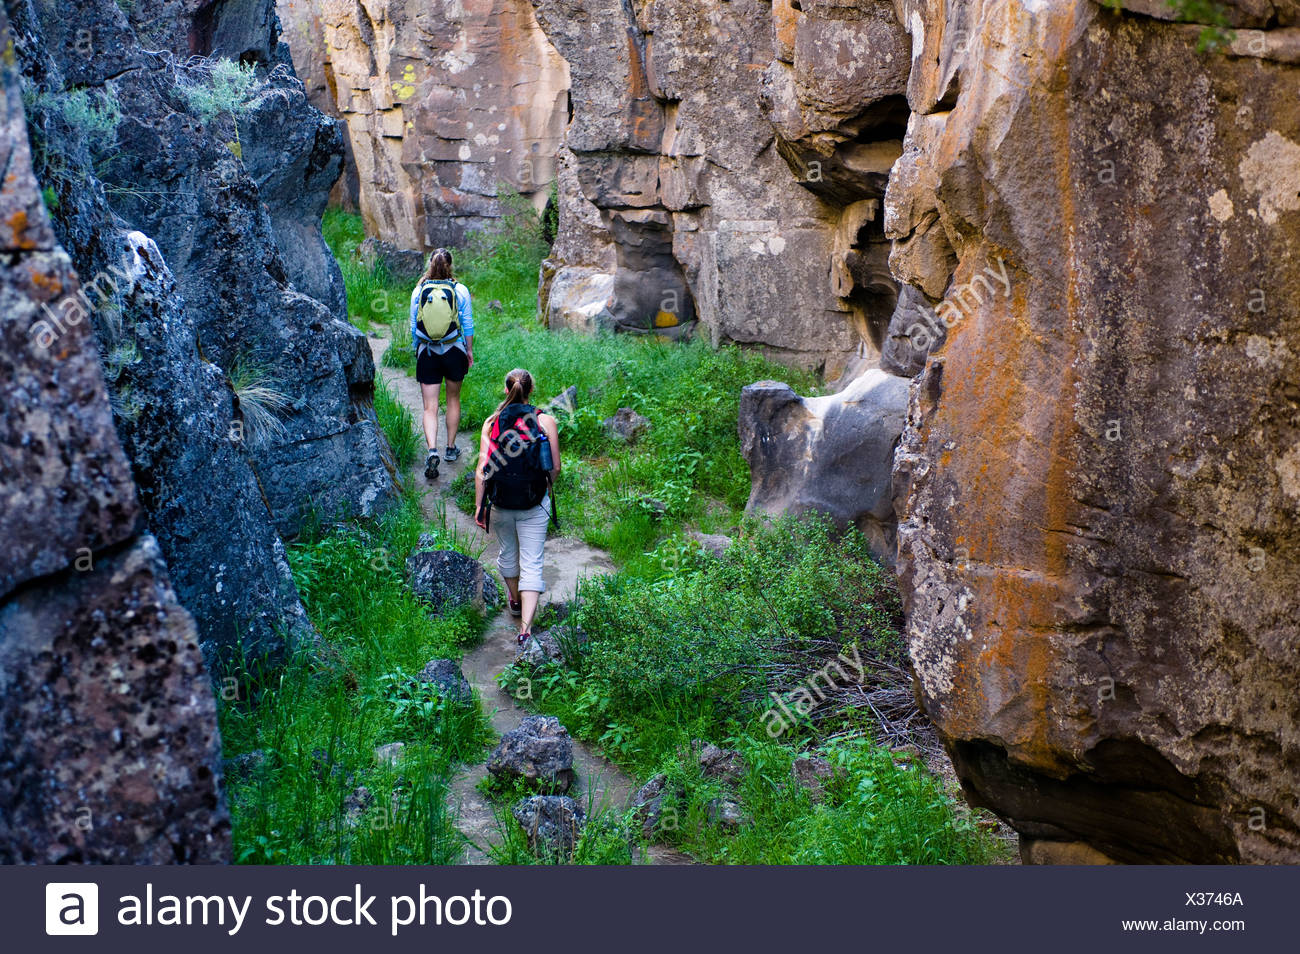 Two women hike through Crack In the Ground, a volcanic fissure near Christmas Valley, Oregon. - Stock Image